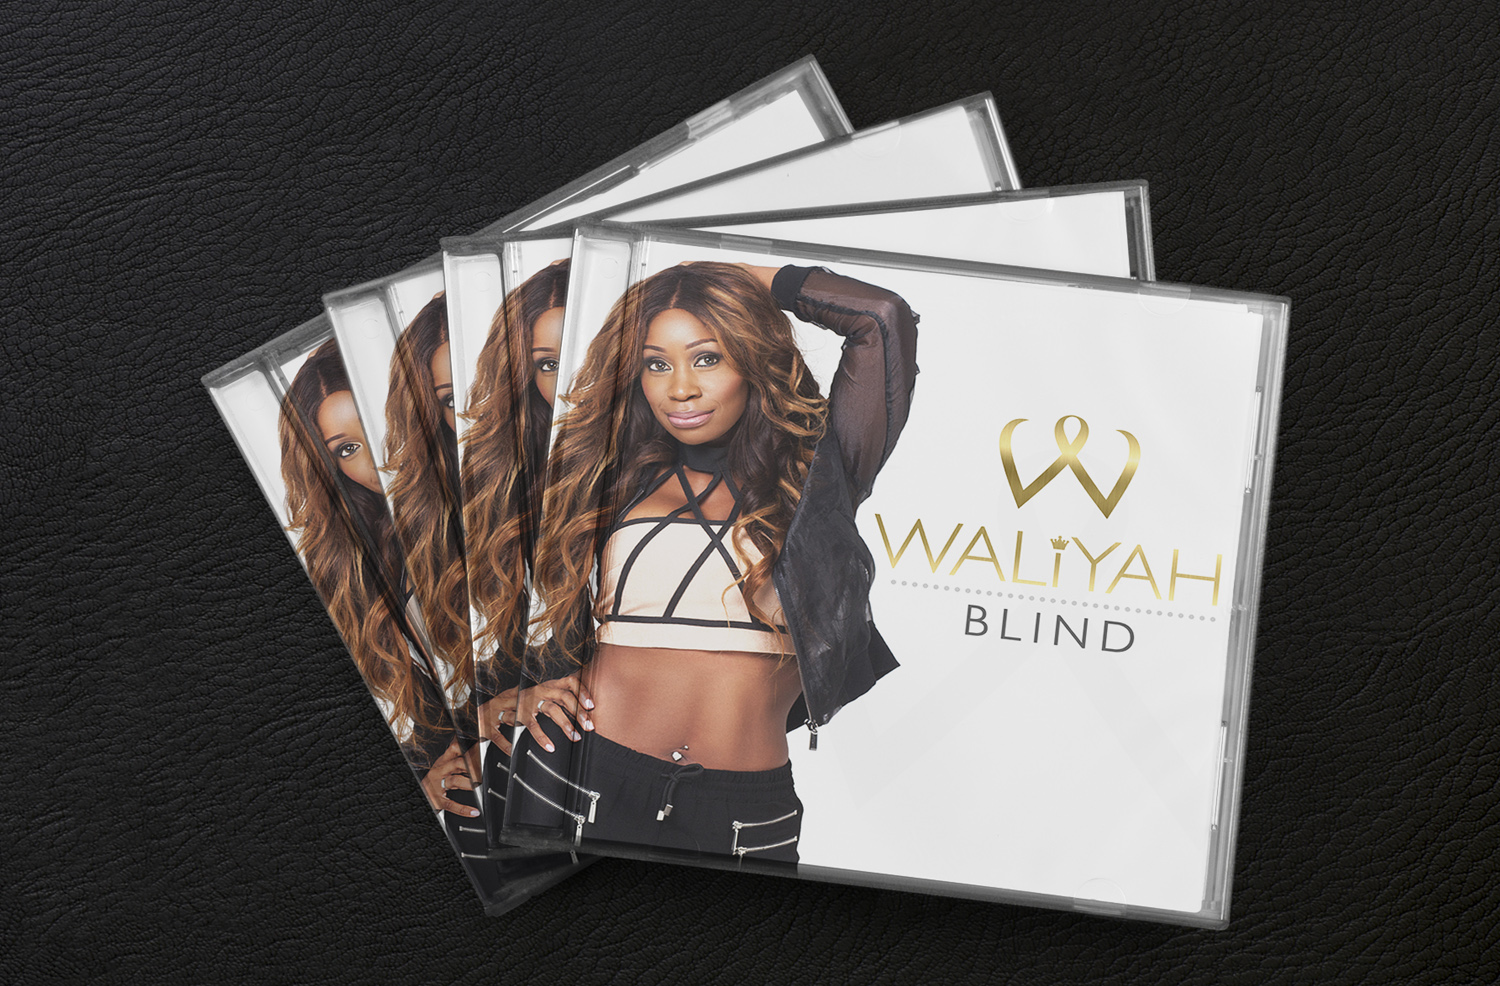 waliyah-blind-promo-image-design-for-cd.jpg